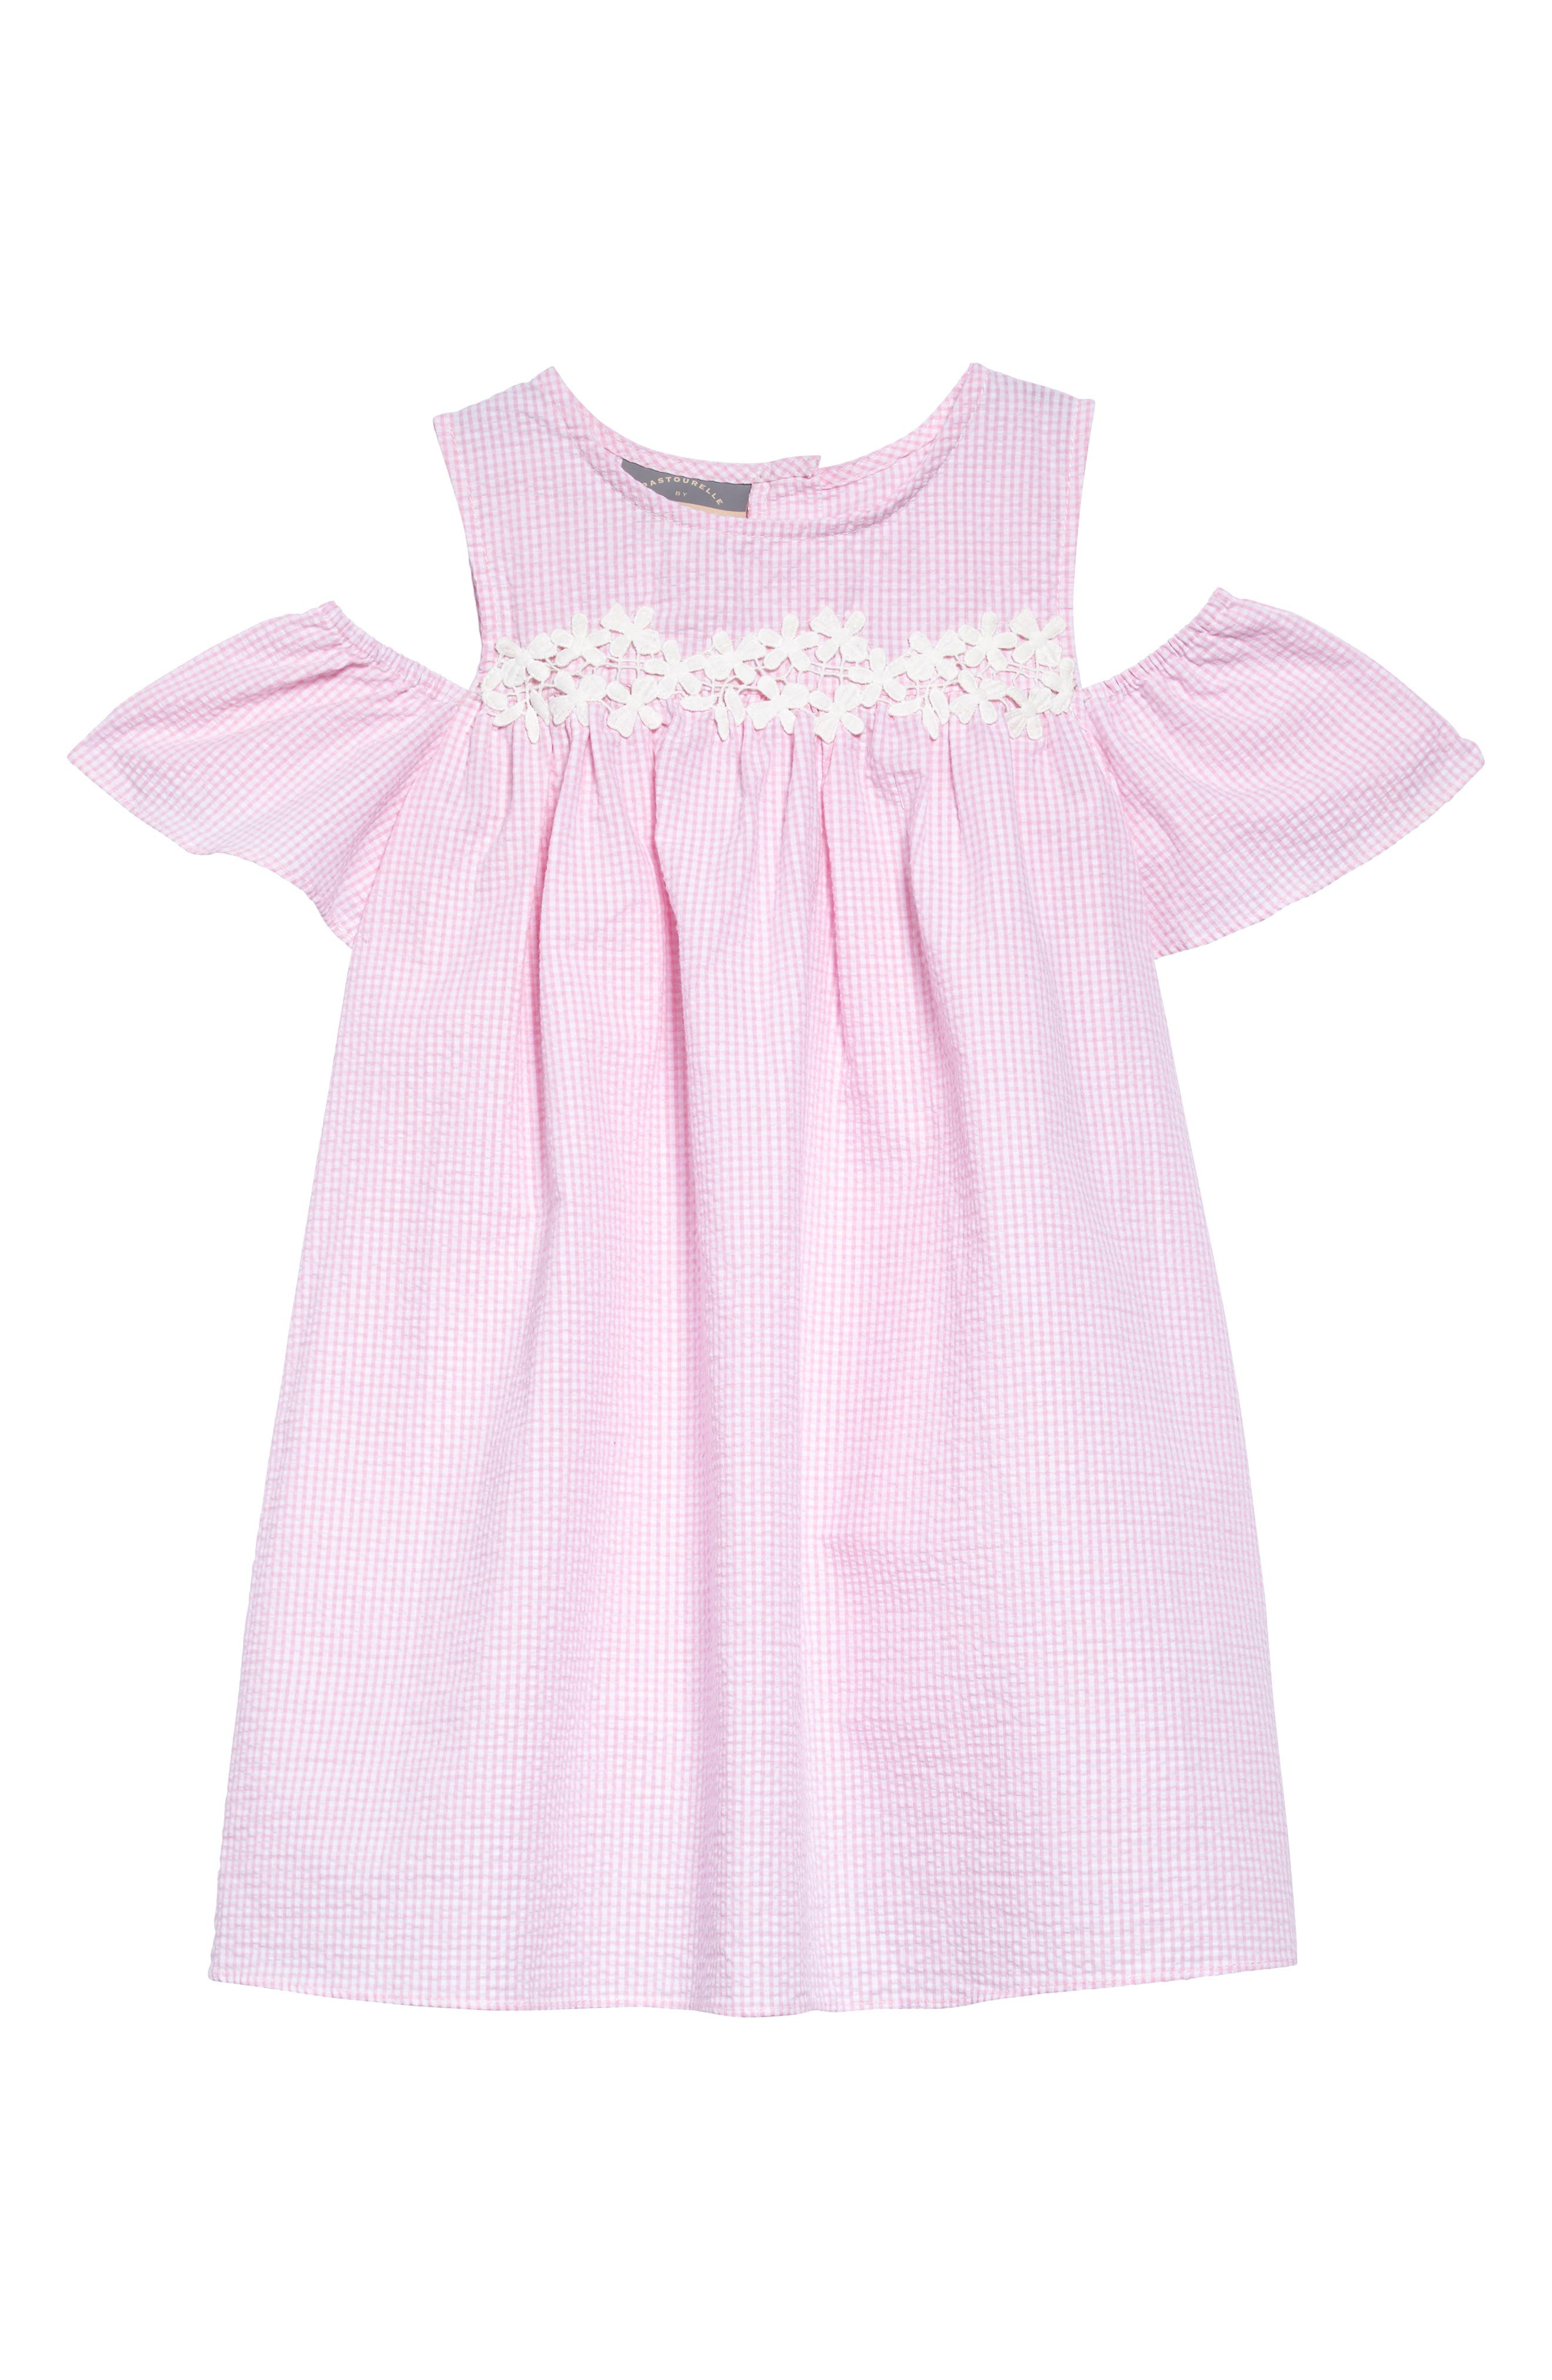 Cold Shoulder Dress,                             Main thumbnail 1, color,                             Pink White